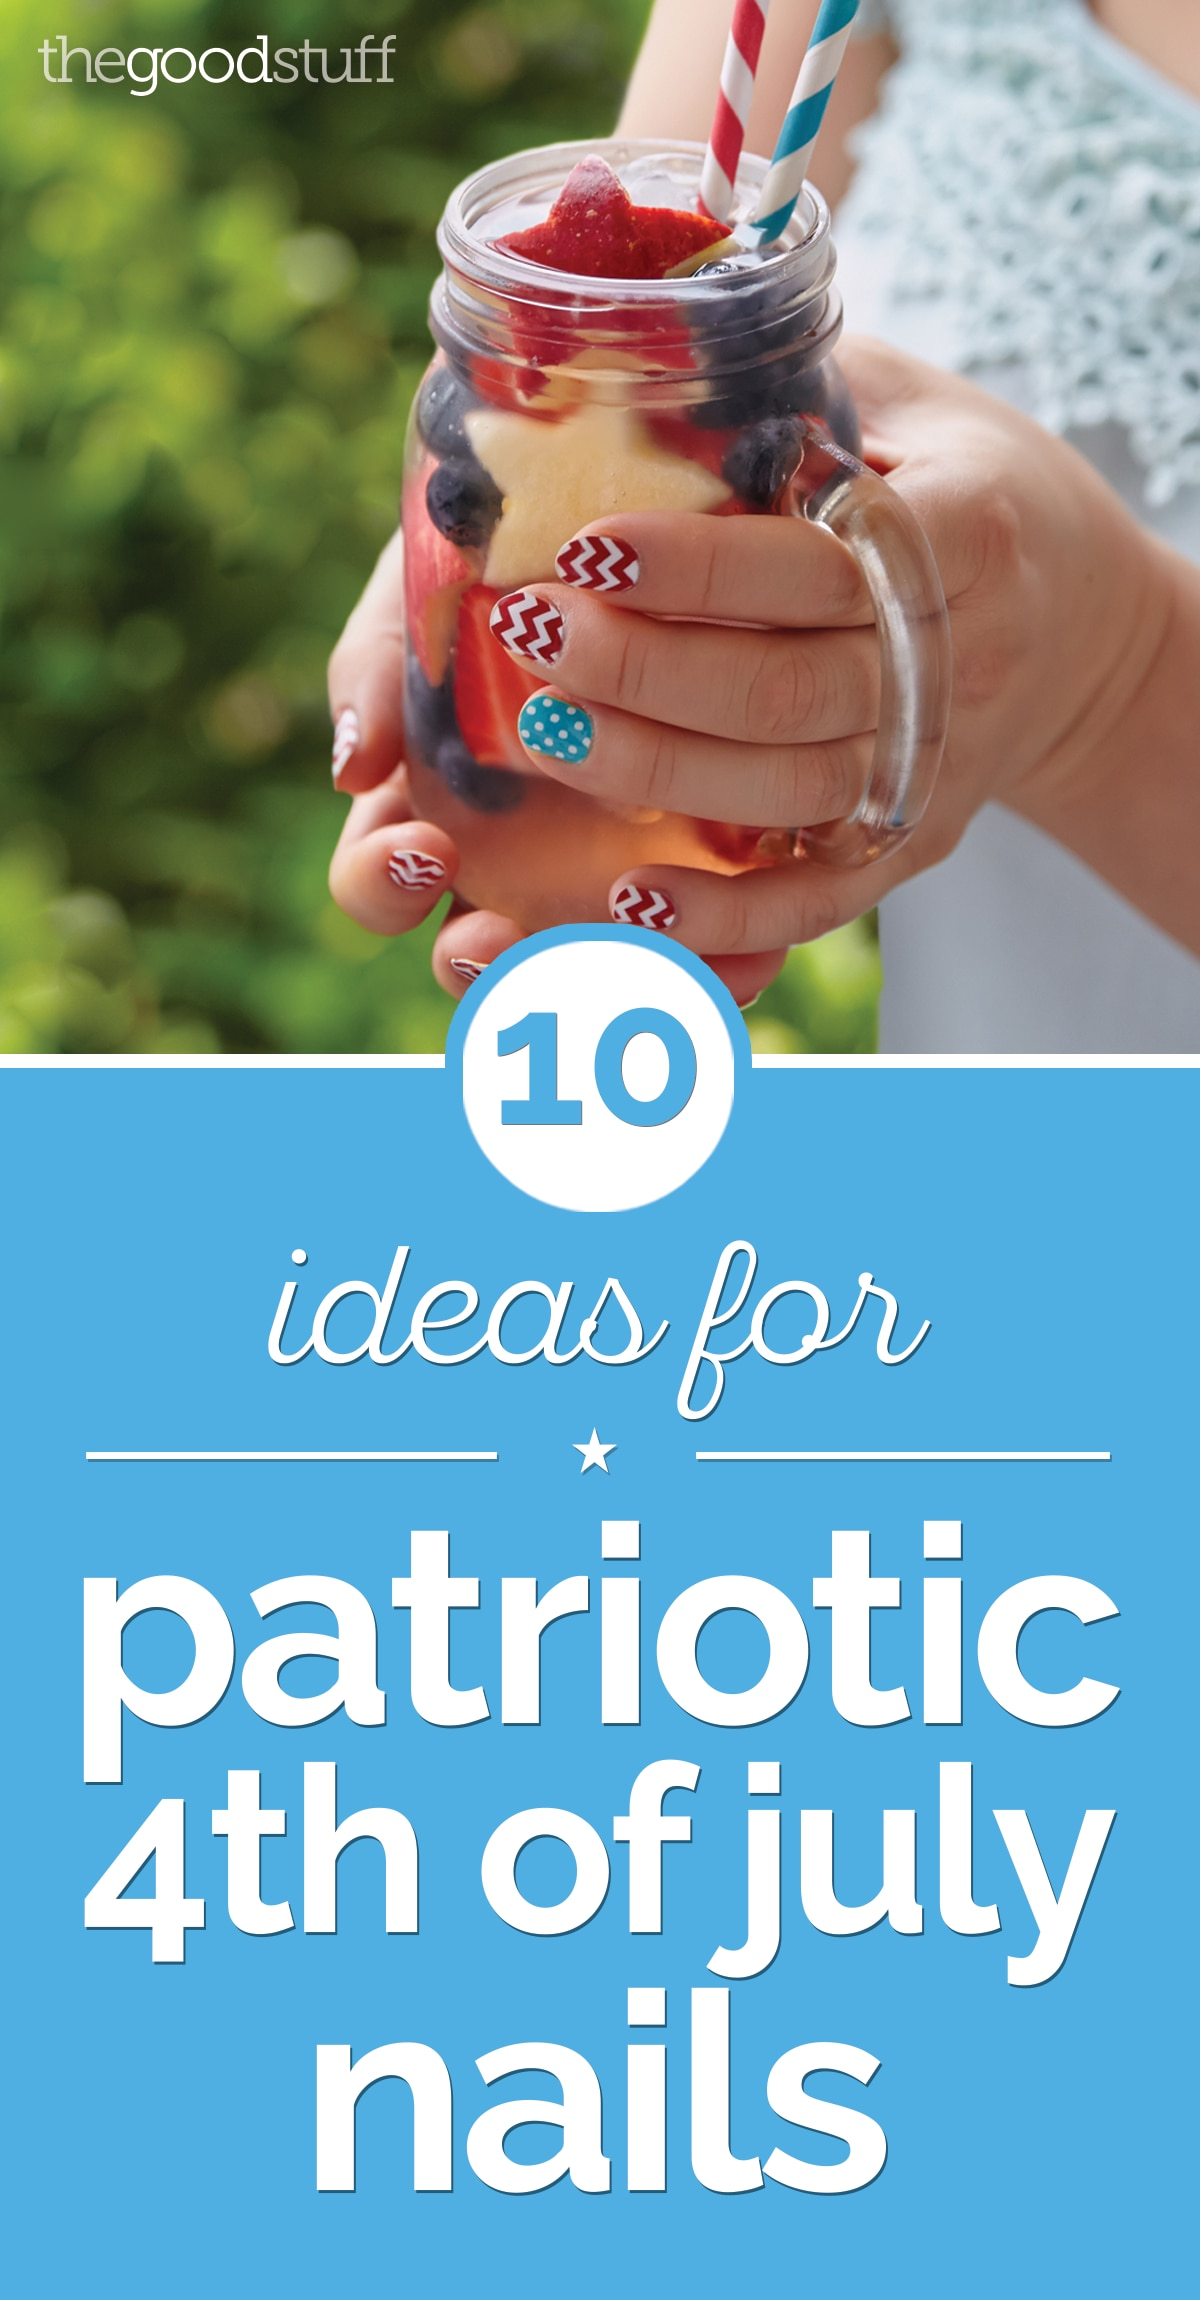 10 Ideas for Patriotic 4th of July Nails | thegoodstuff